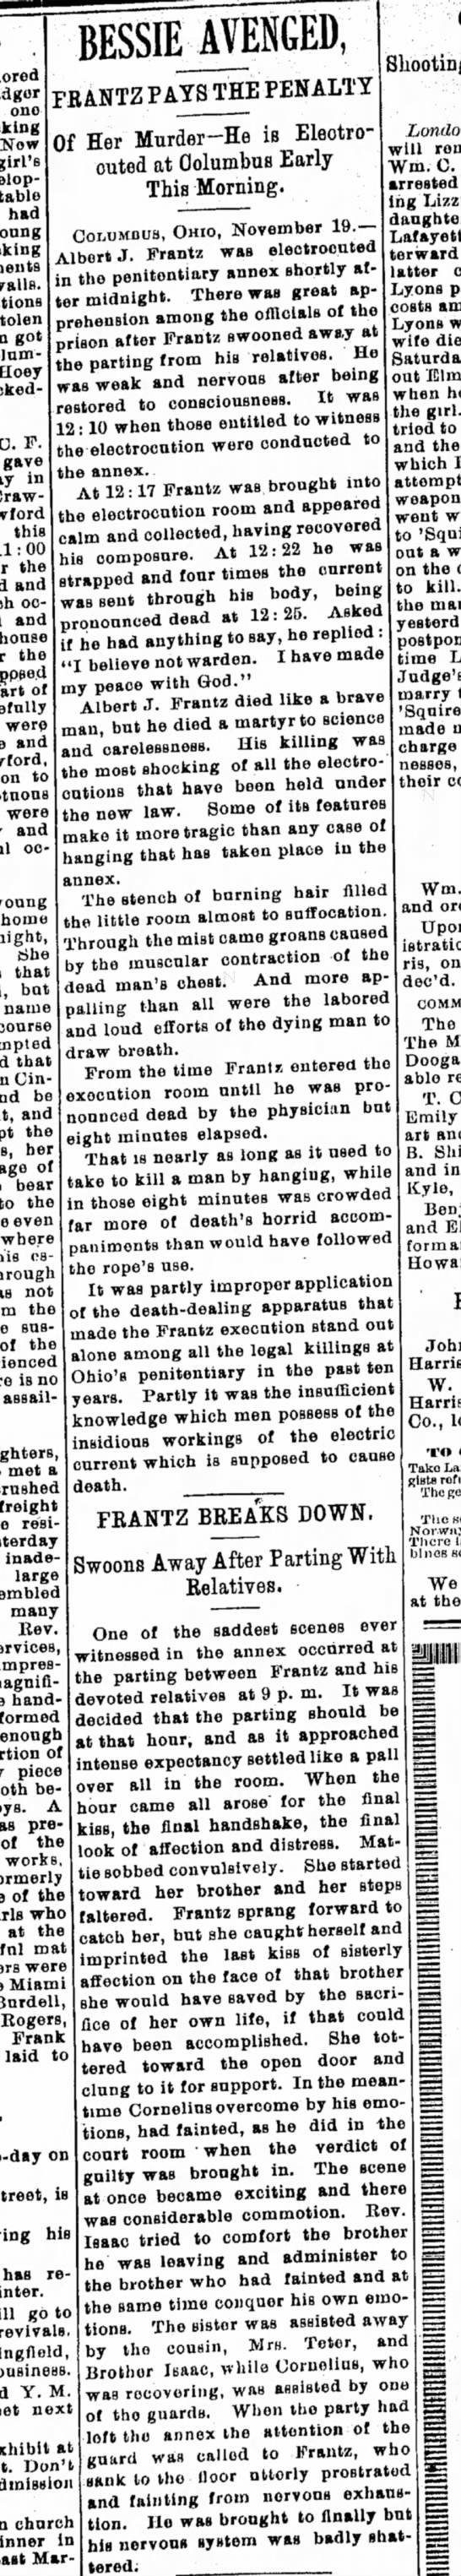 19 Nov. 1897, Xenia Daily Gazette - Now i« » ^ young urn got lloey BESSIE_AVENGED,...